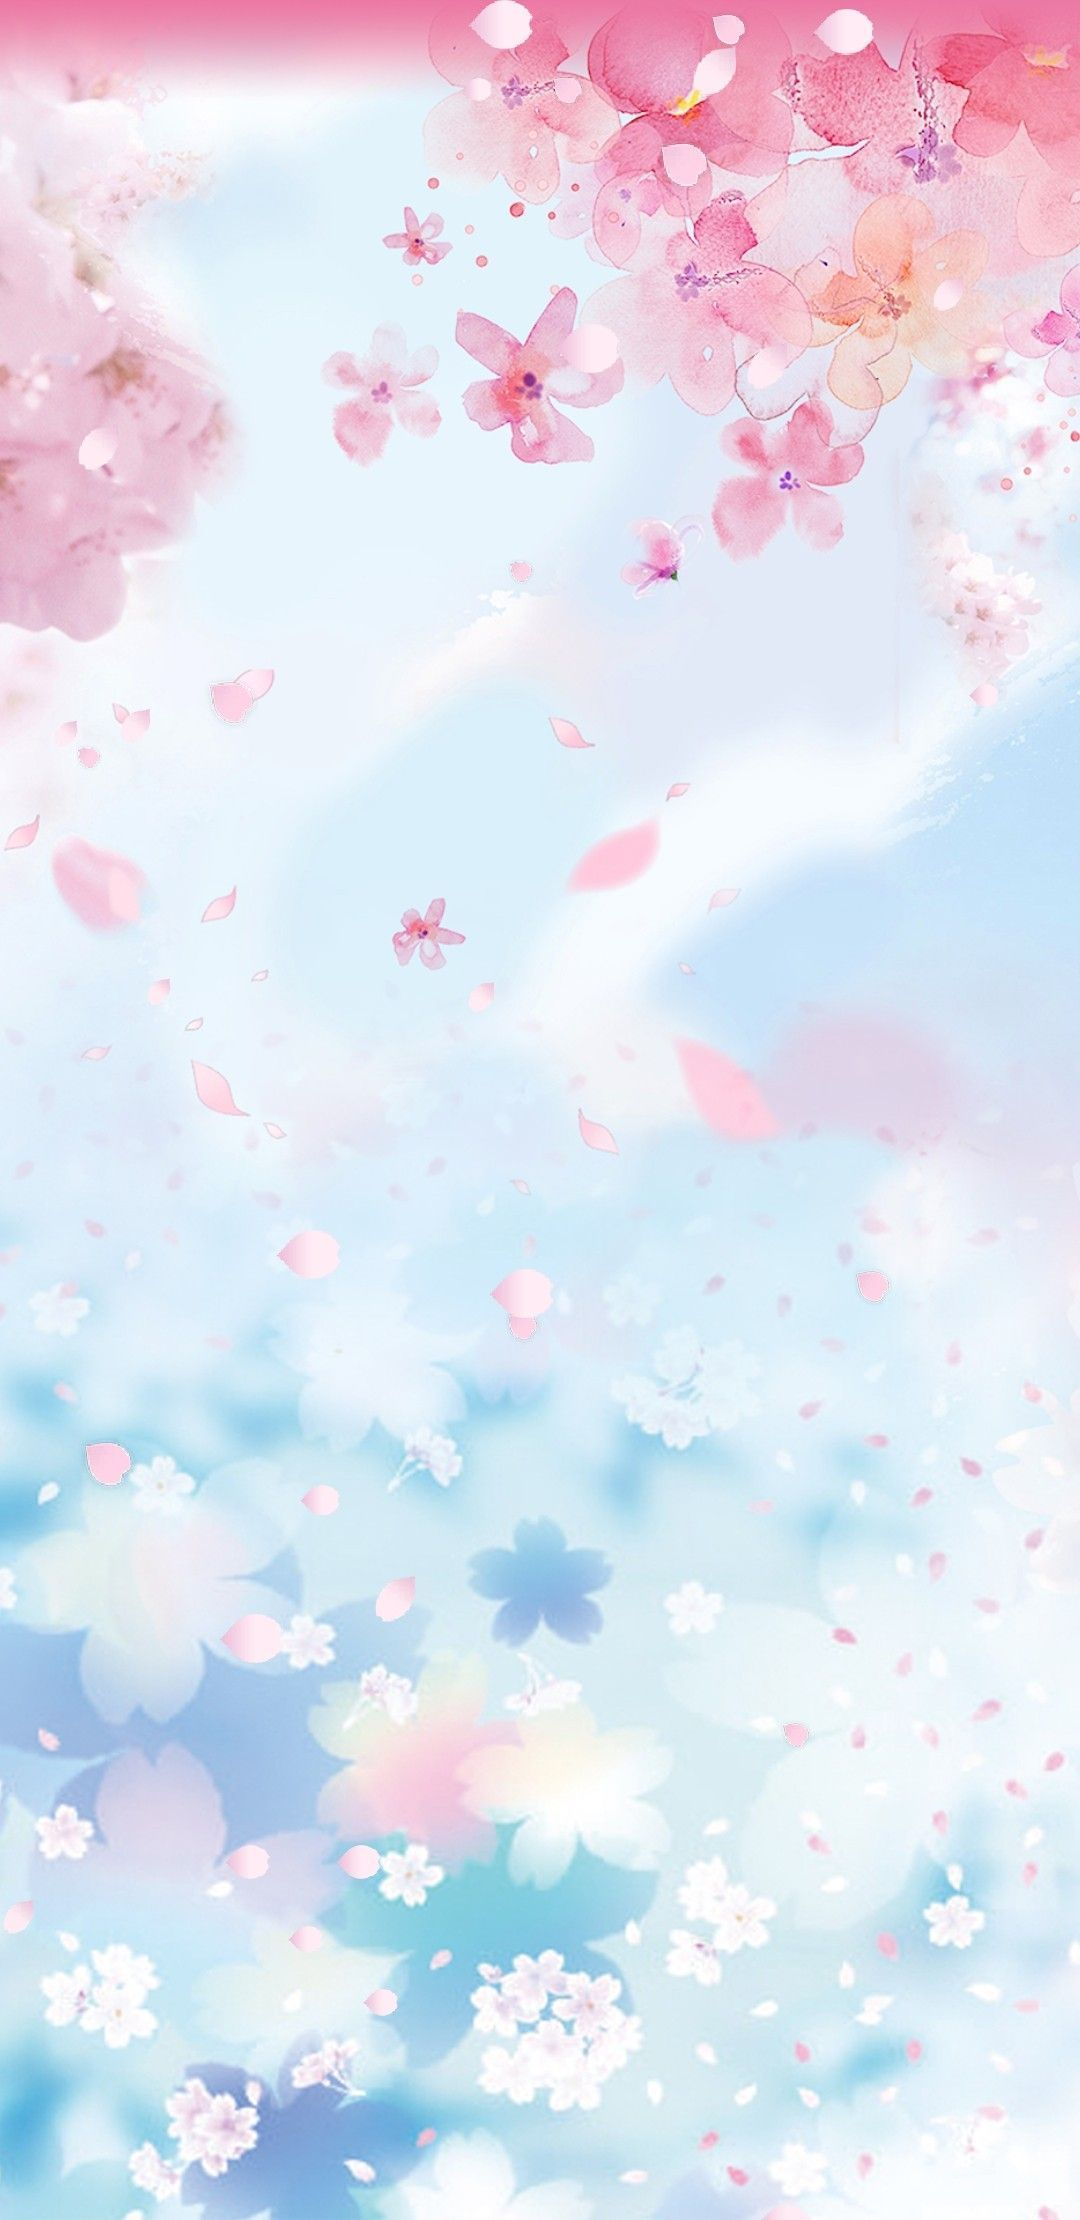 Most Latest Anime Wallpaper Iphone Pastel Cherry Blossom Wallpaper Iphone Cherry Blossom Wallpaper Anime Wallpaper 21 anime wallpaper for iphone x